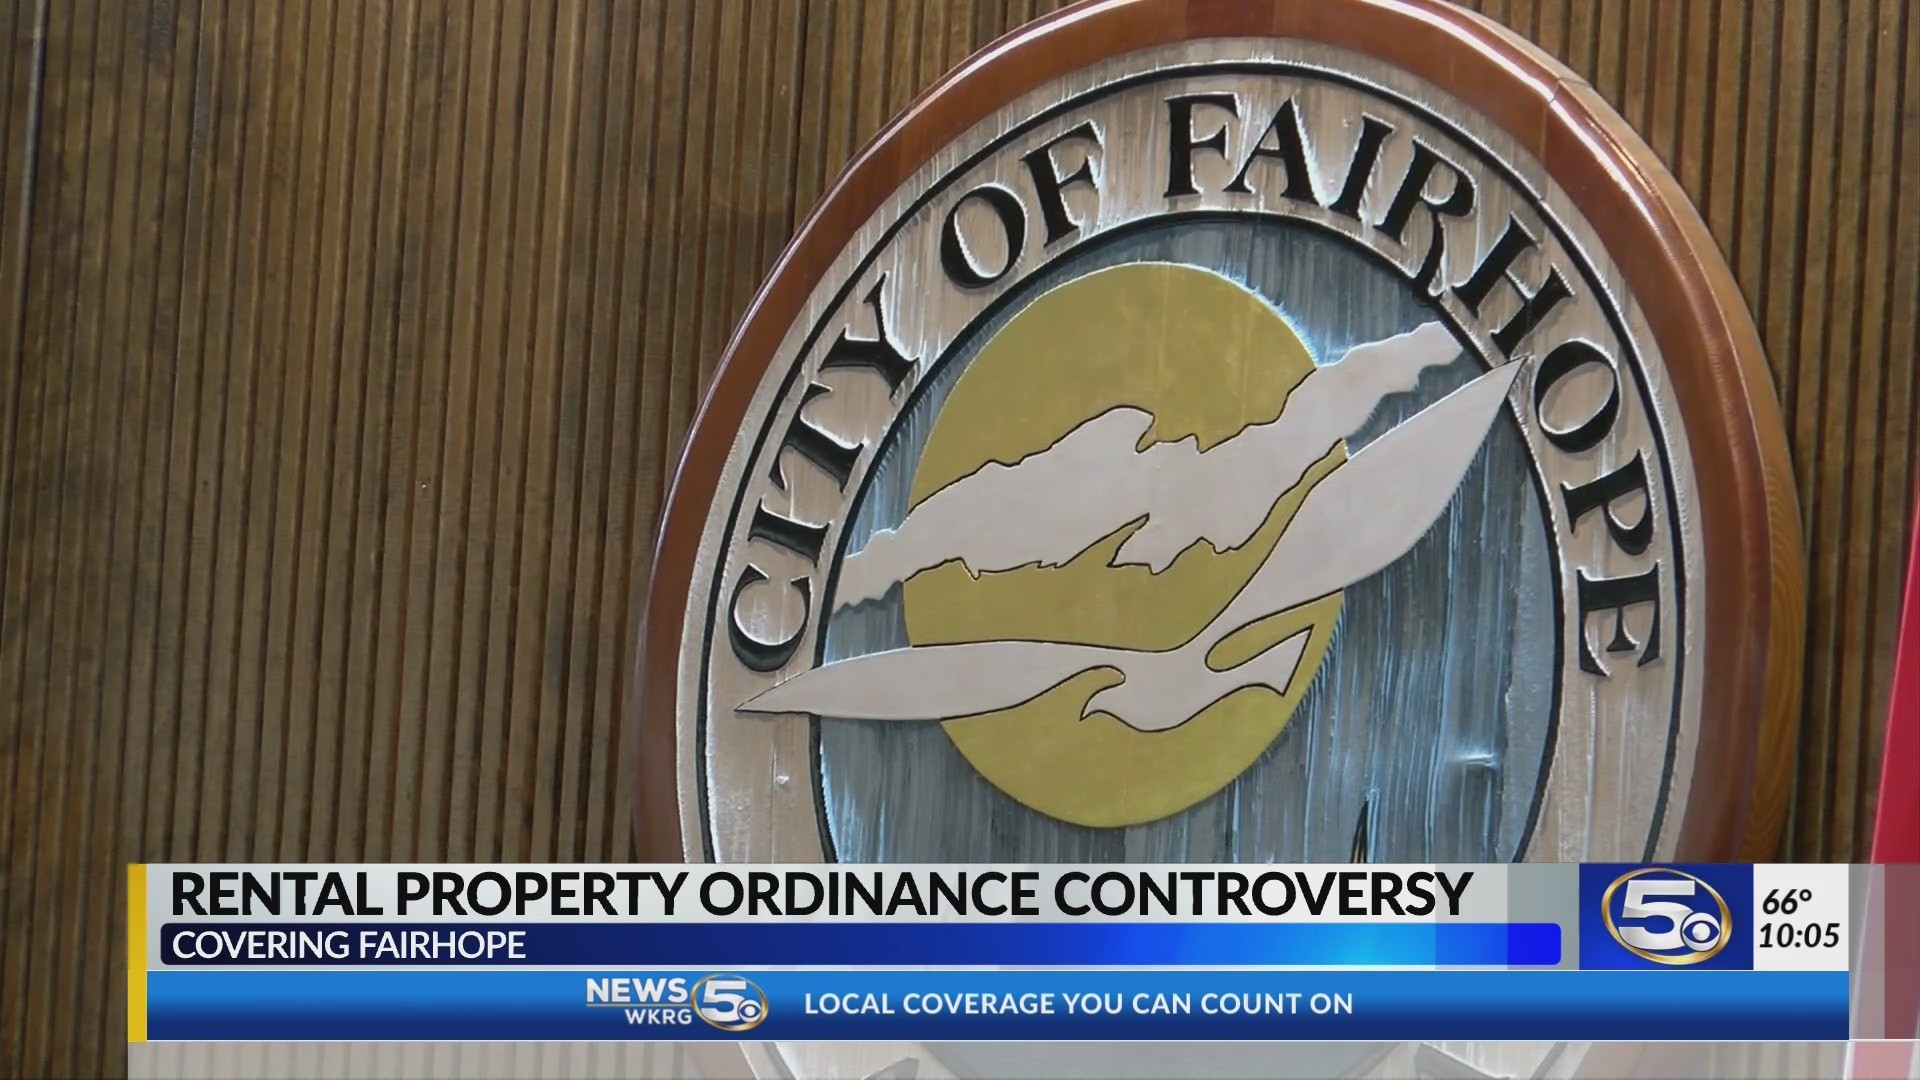 VIDEO: Fairhope property managers say ordinance unfairly targets them